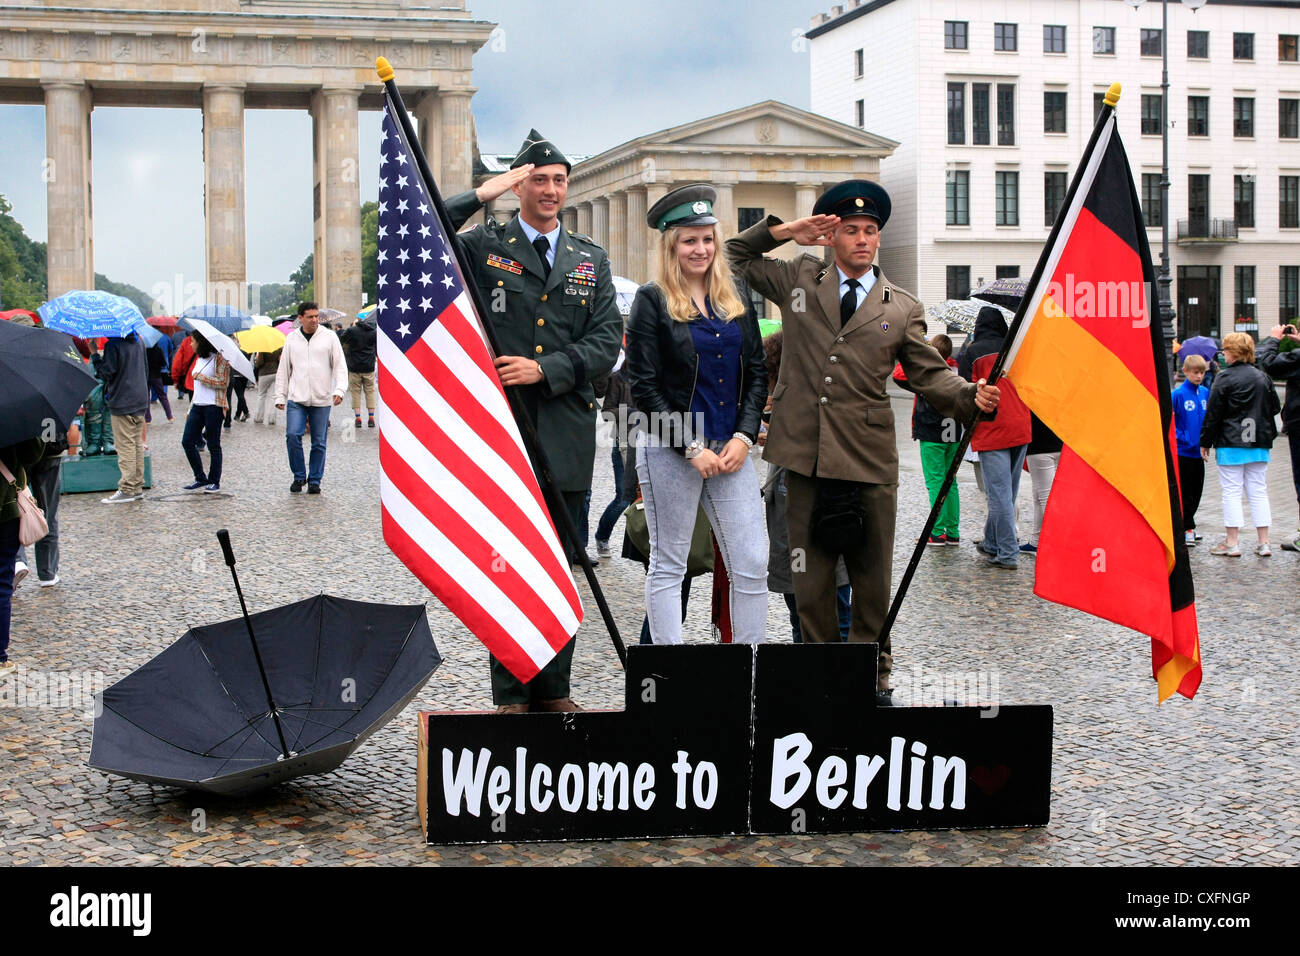 Welcome to Berlin Tourist Photo Opportunity with US and DDR Soldiers - Stock Image